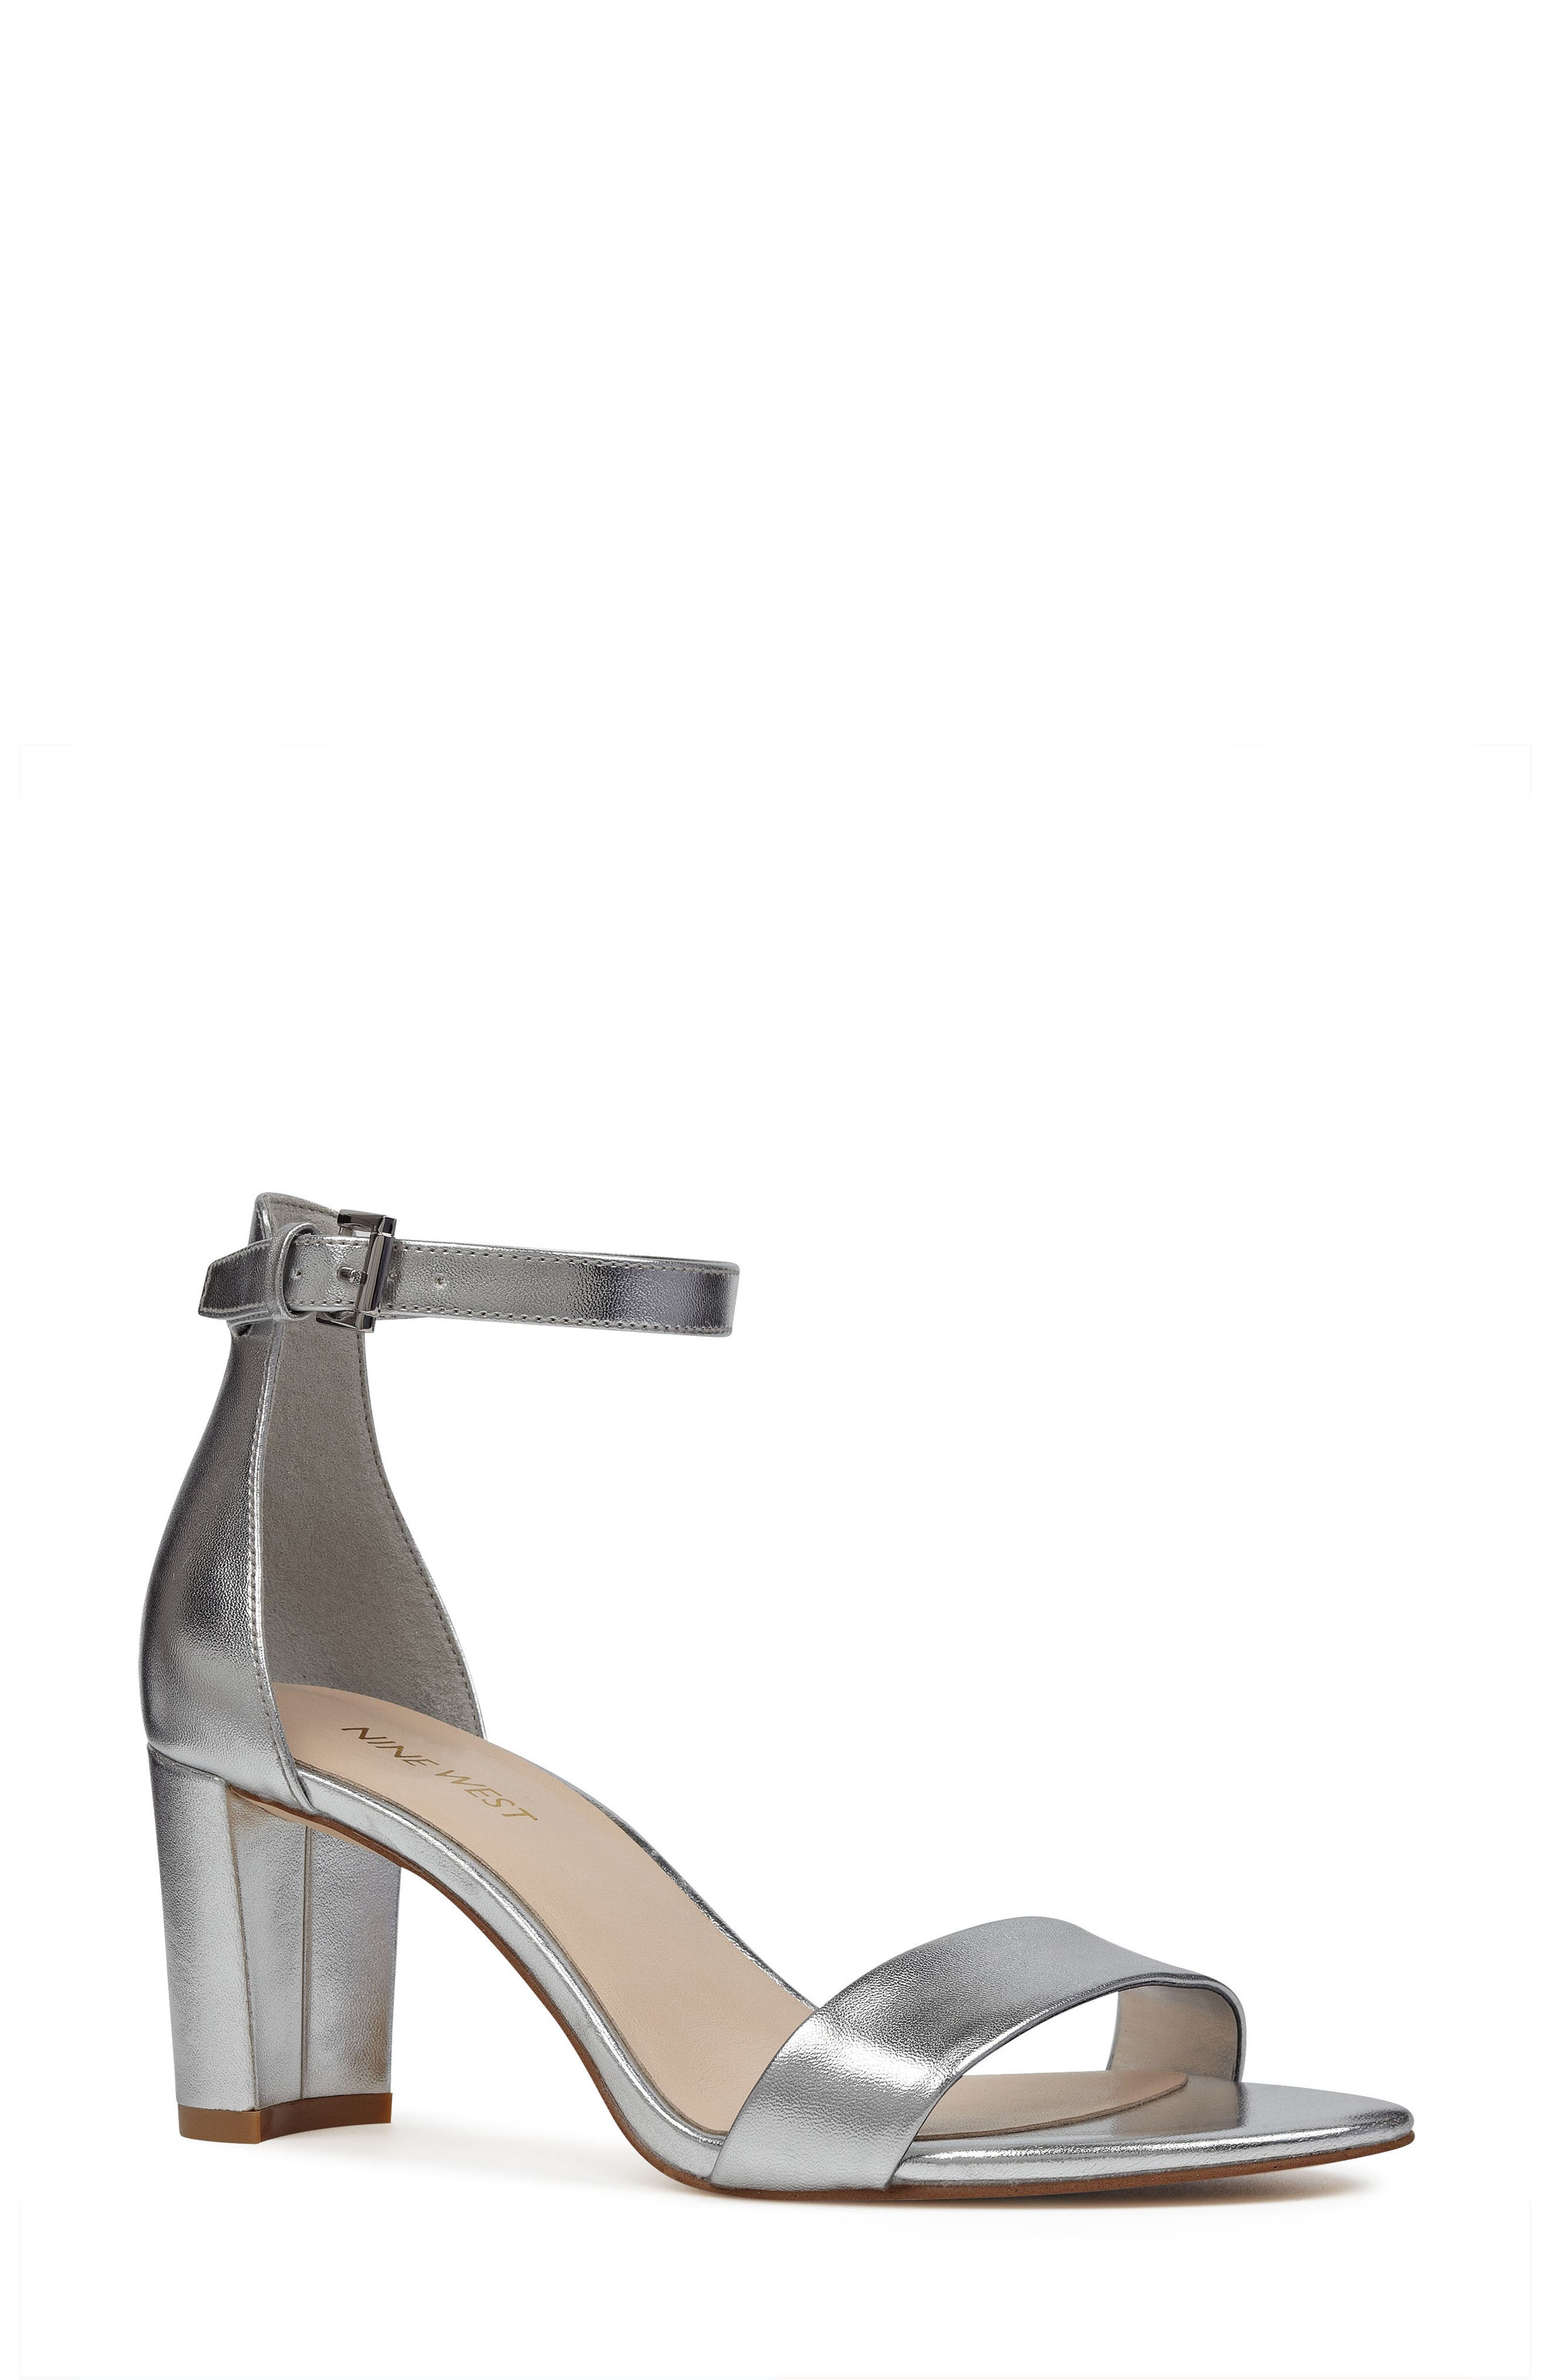 Pruce Ankle Strap Sandal,                         Main,                         color, Silver Fabric